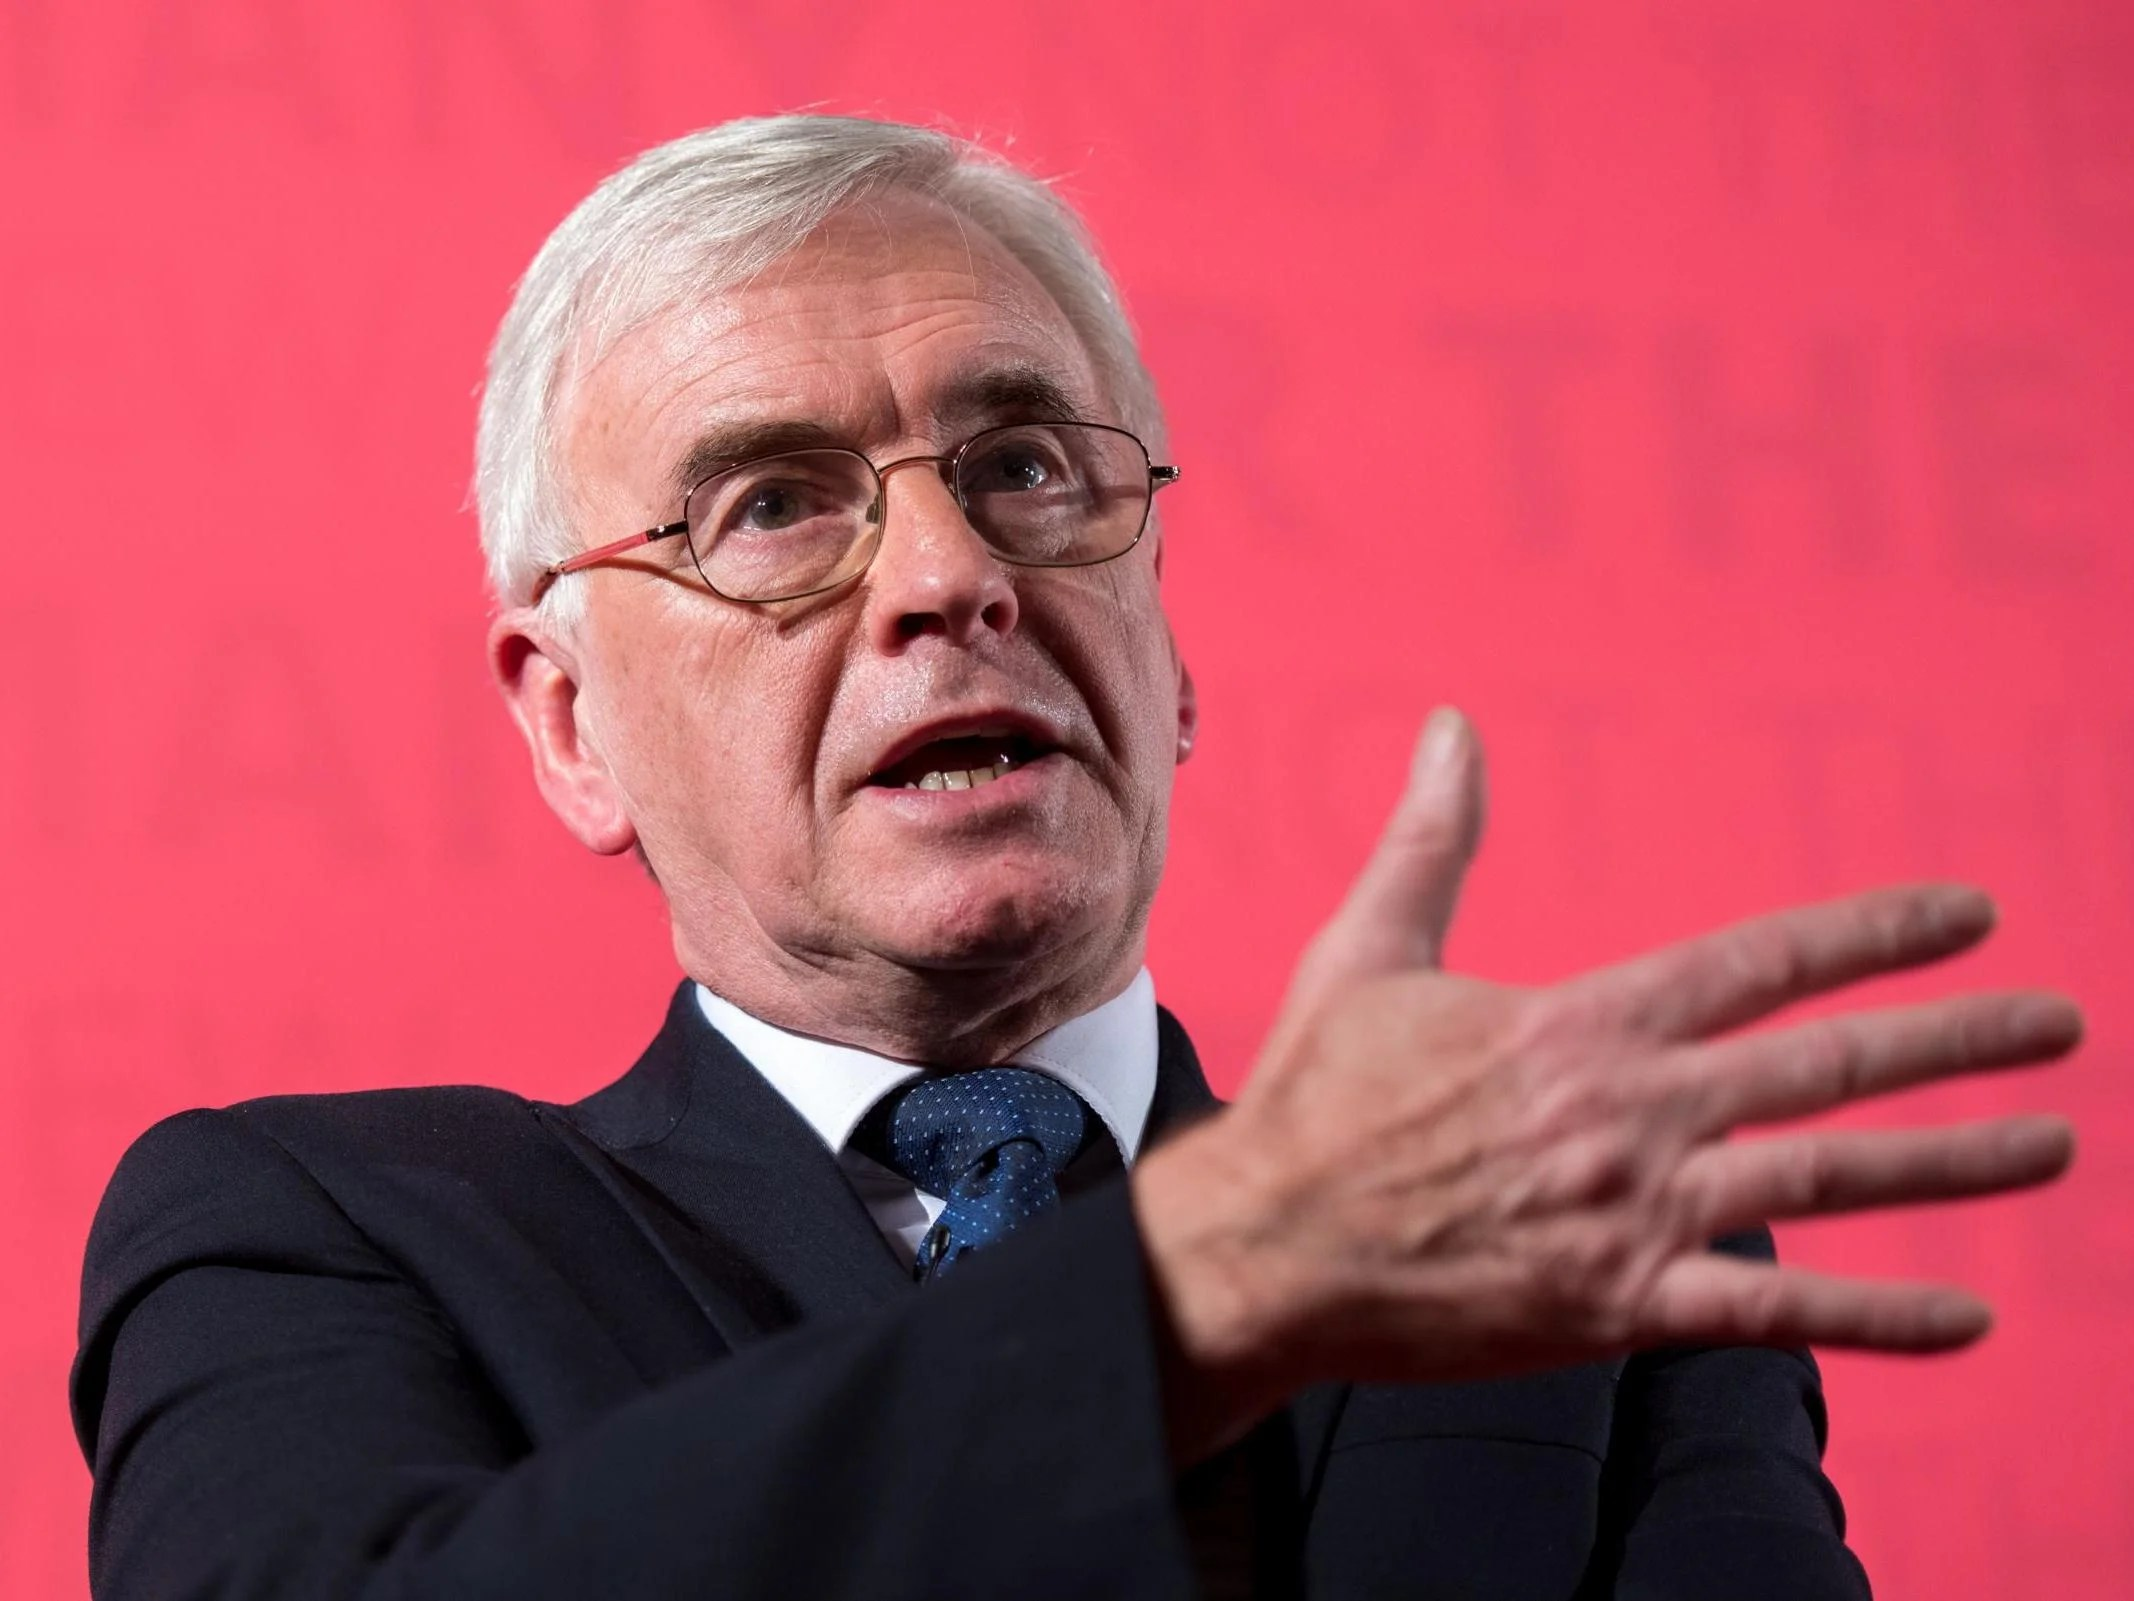 The policy outlined by the shadow chancellor could potentially transform the welfare state